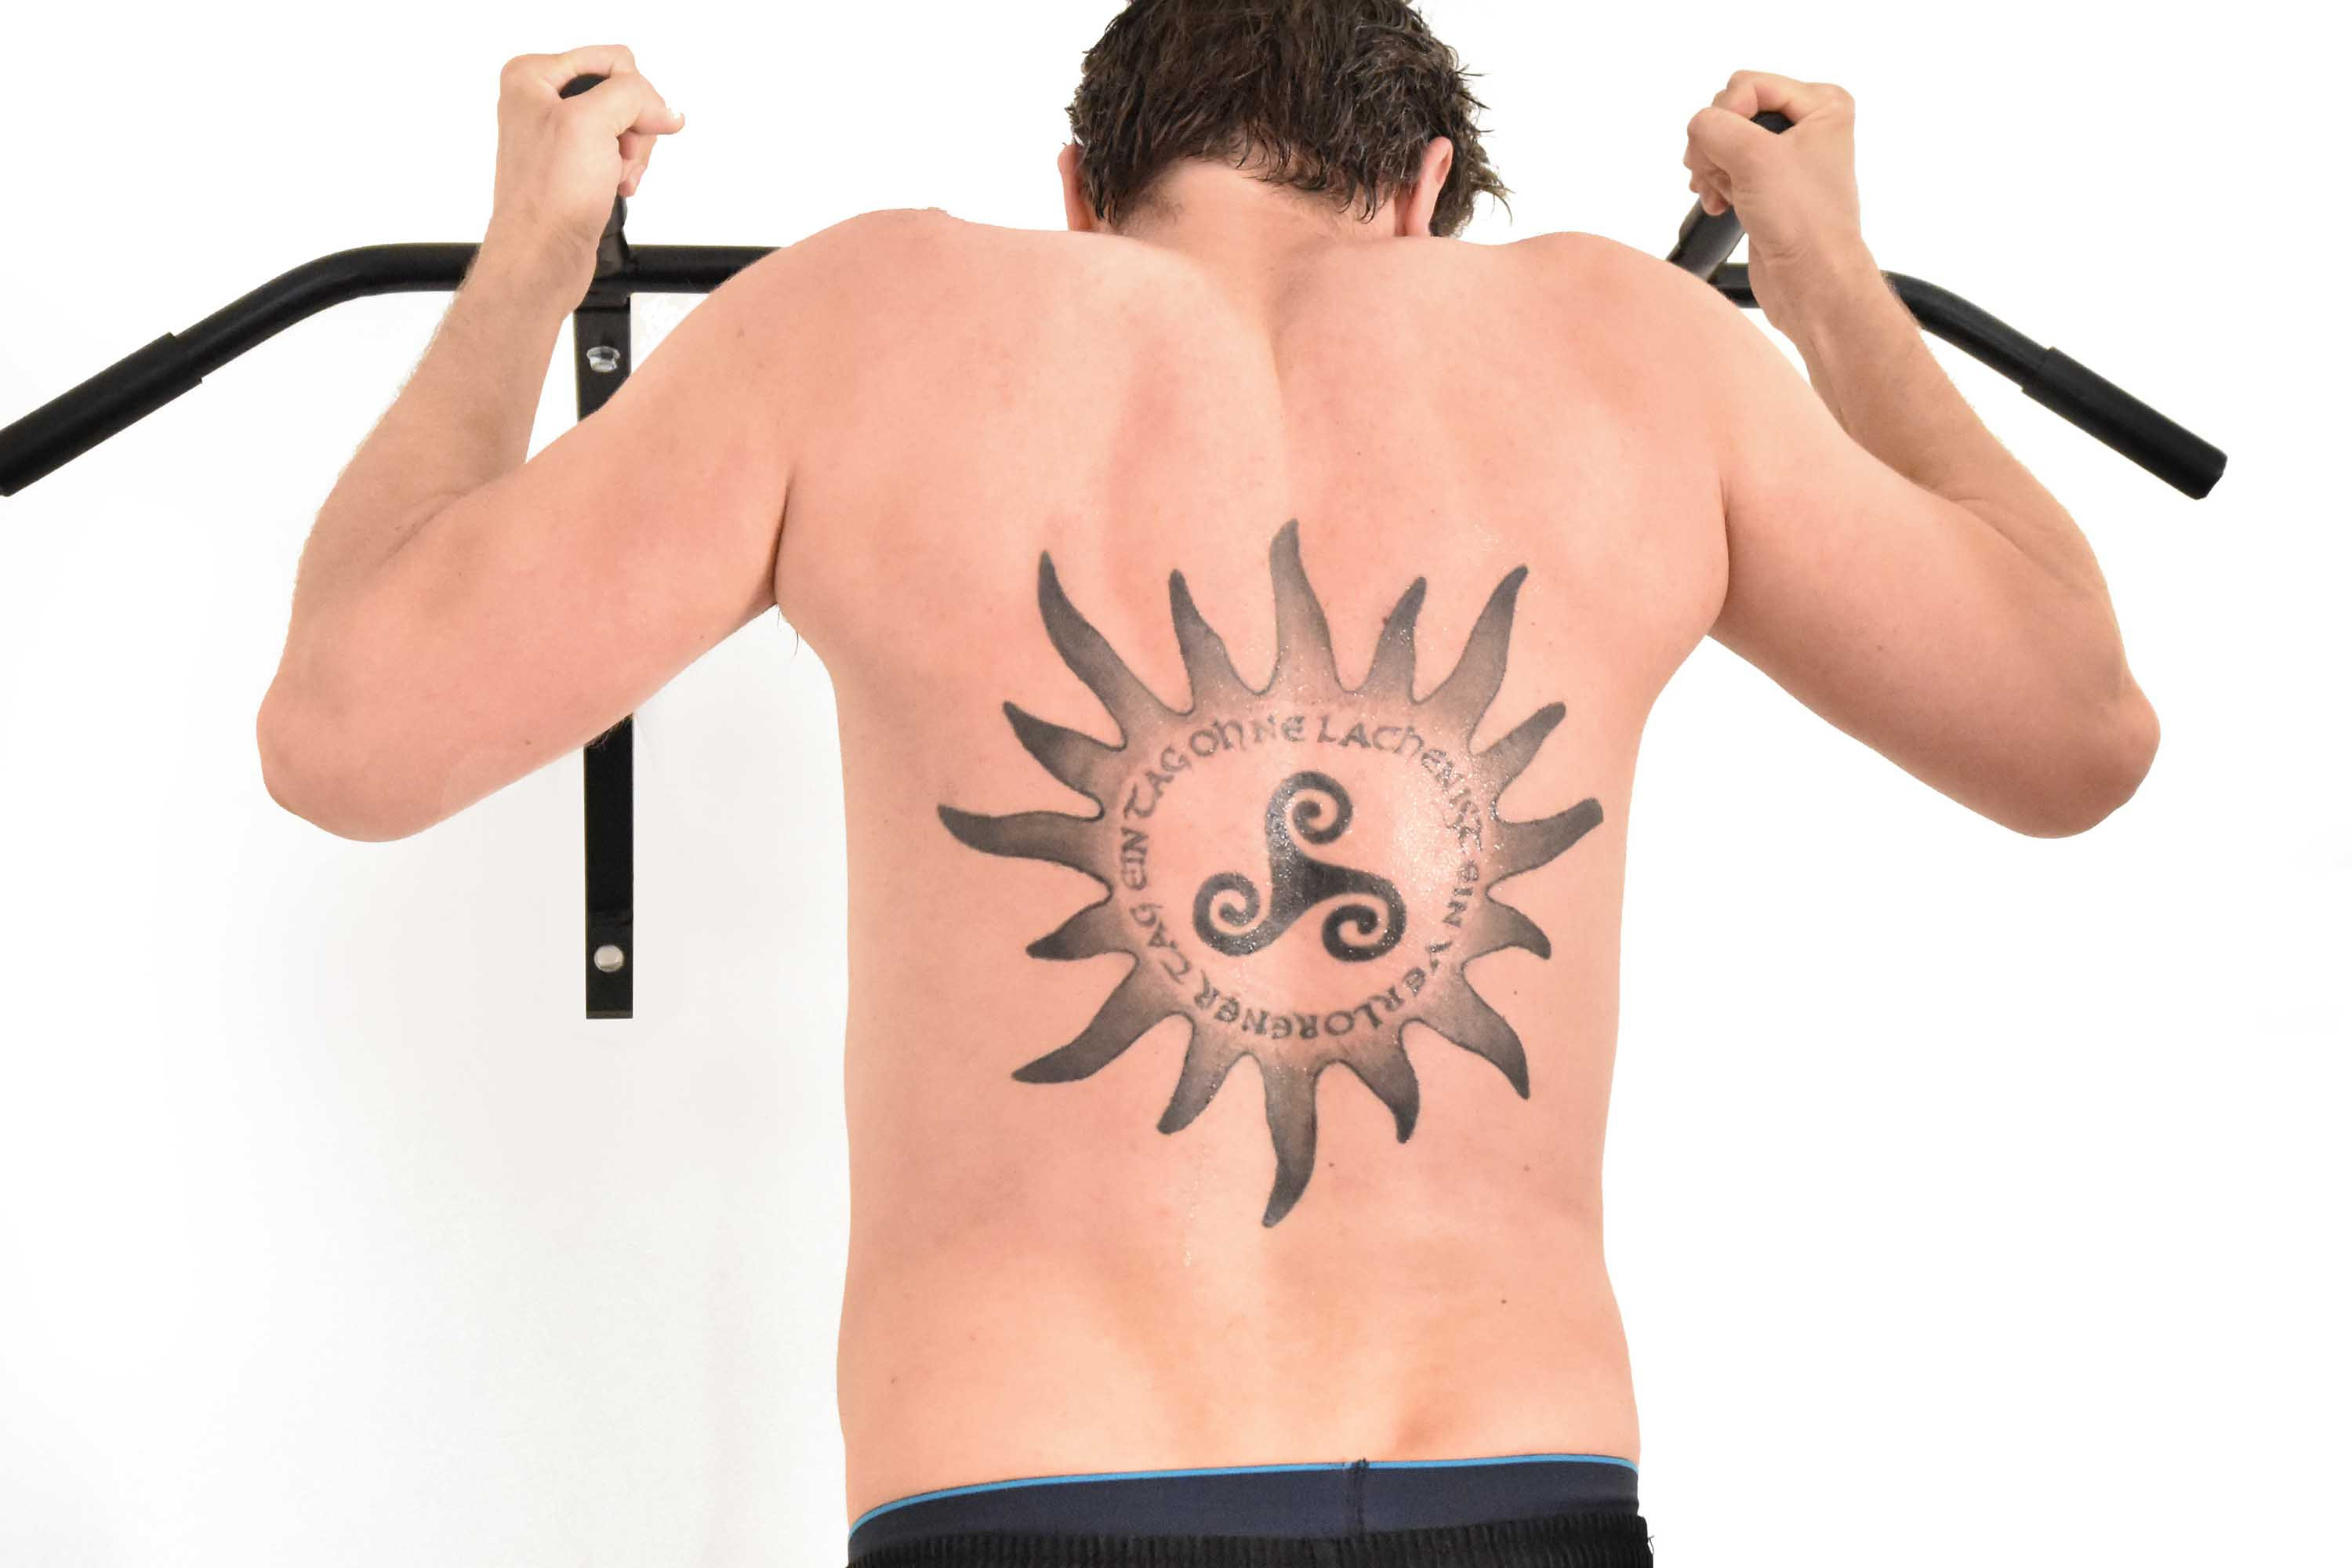 RONIN_DOJO_Traditionelles_thaiboxen_Krafttraining_Tattoo